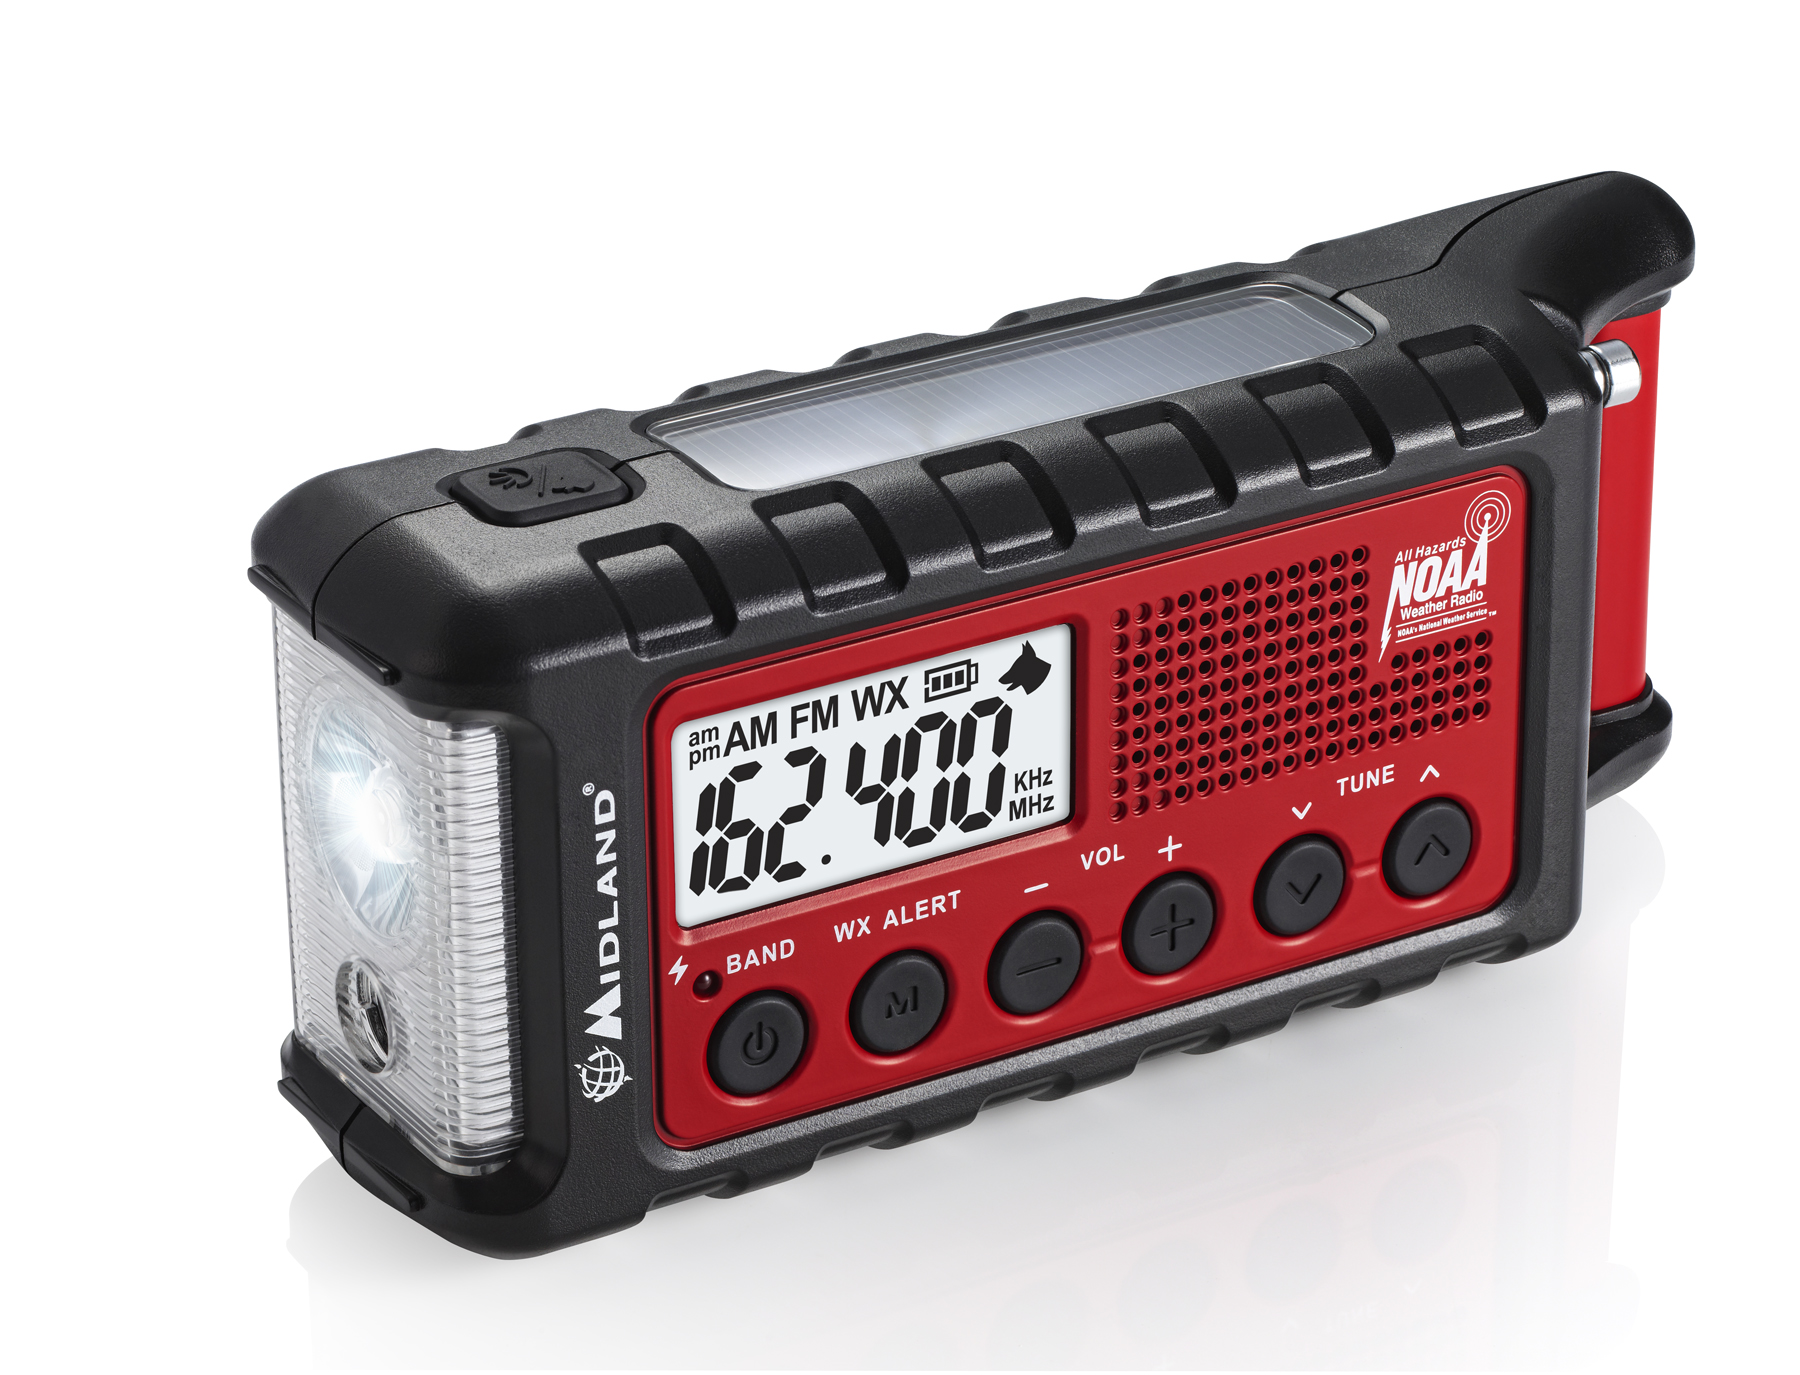 MIDLAND ER310 SOLAR CRANK AM/FM RADIO WITH USB CHARGING PORT, NOAA WEATHER, FLASHLIGHT WITH SOS BEACON & ULTRASONIC DOG WHISTLE